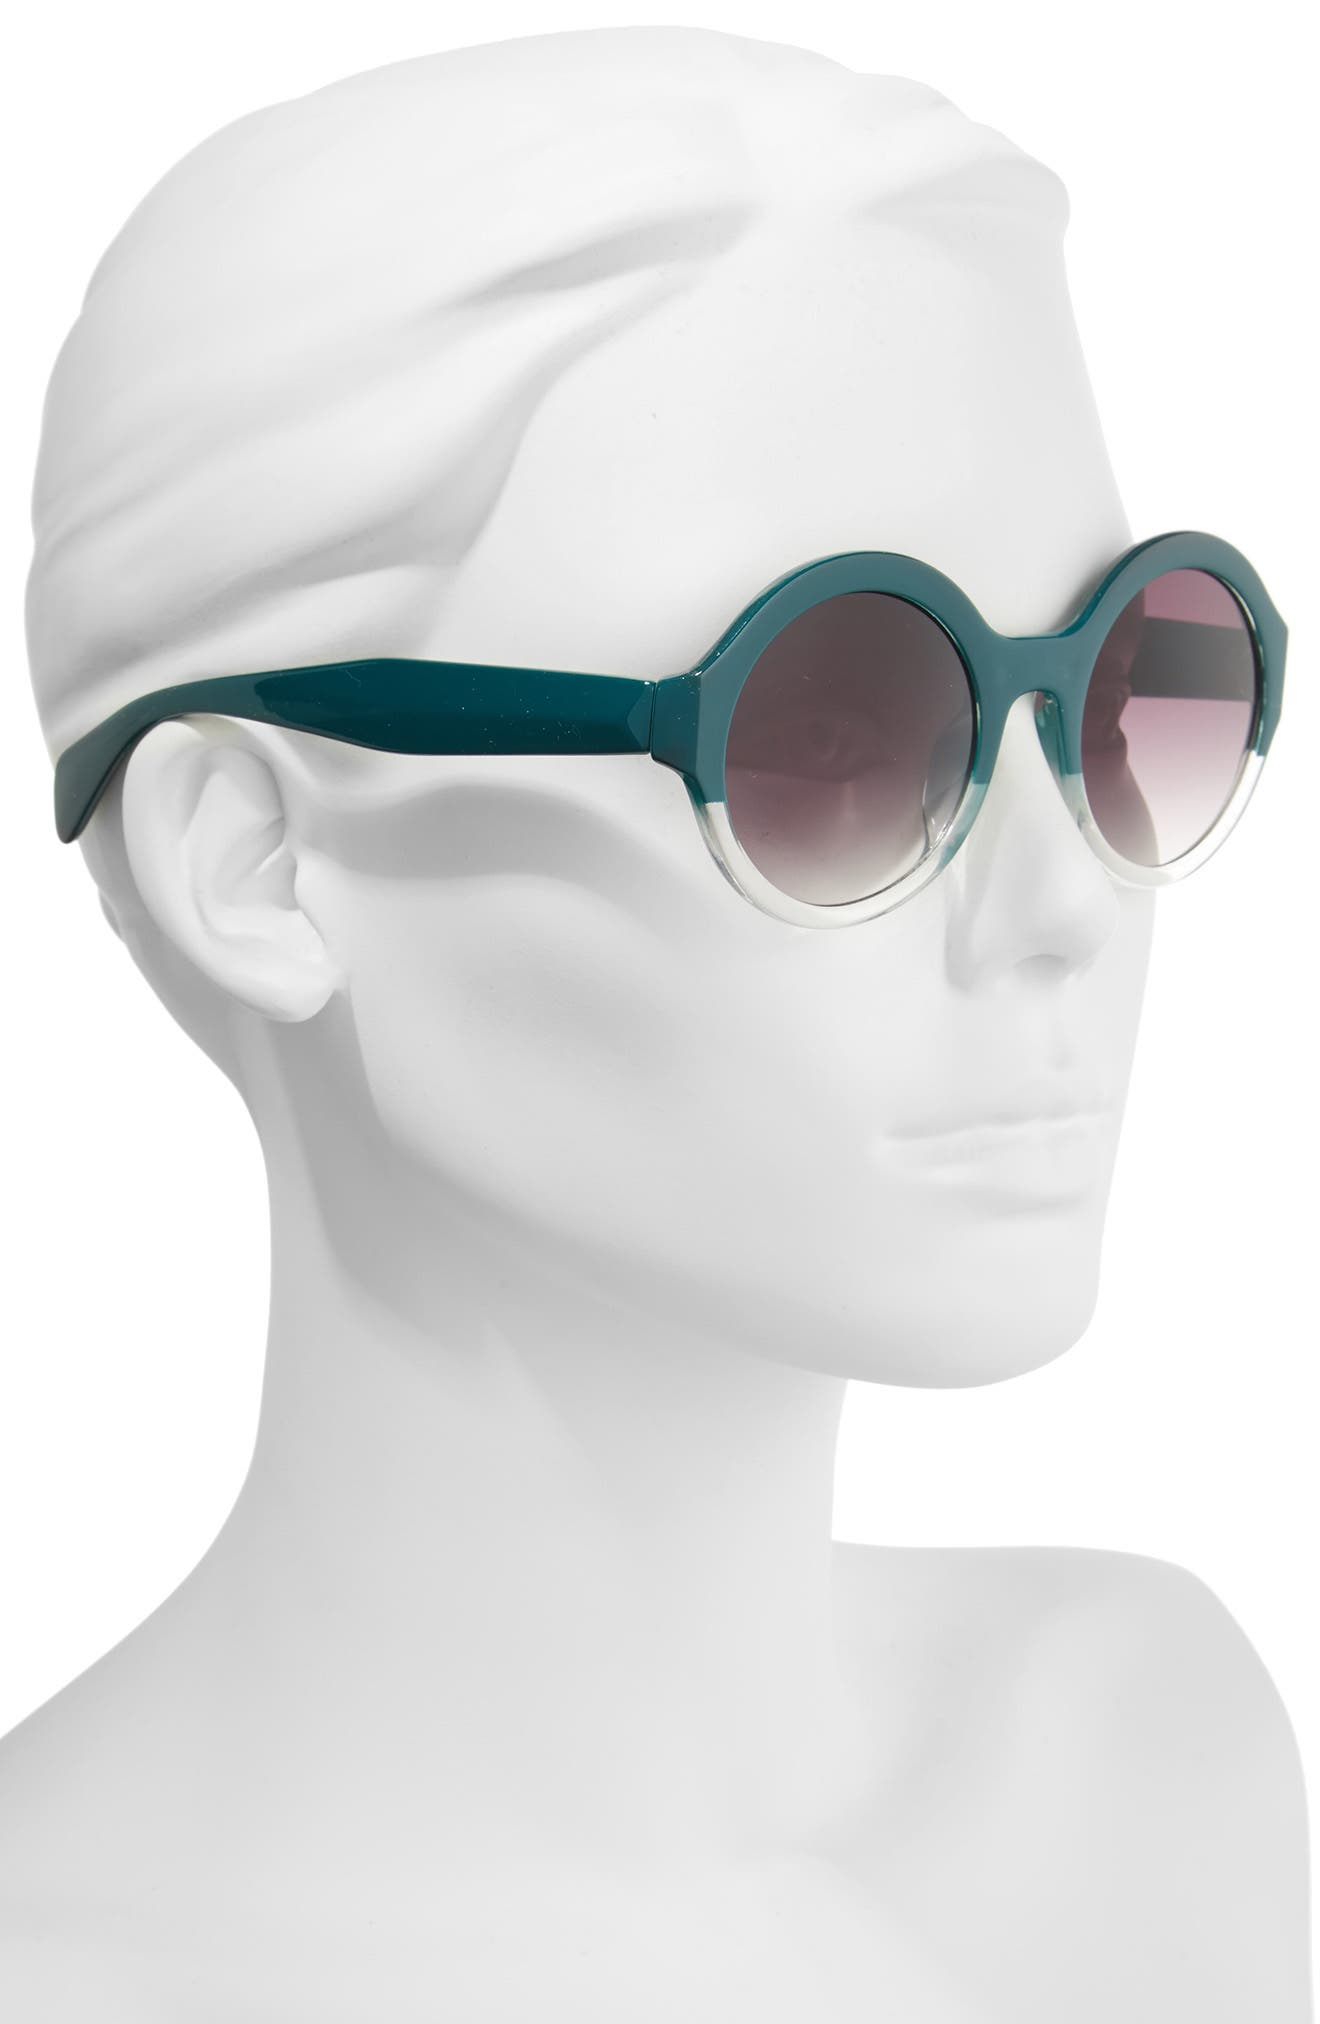 50mm Round 2 Tone Sunglasses,                             Alternate thumbnail 2, color,                             Emerald/ Clear